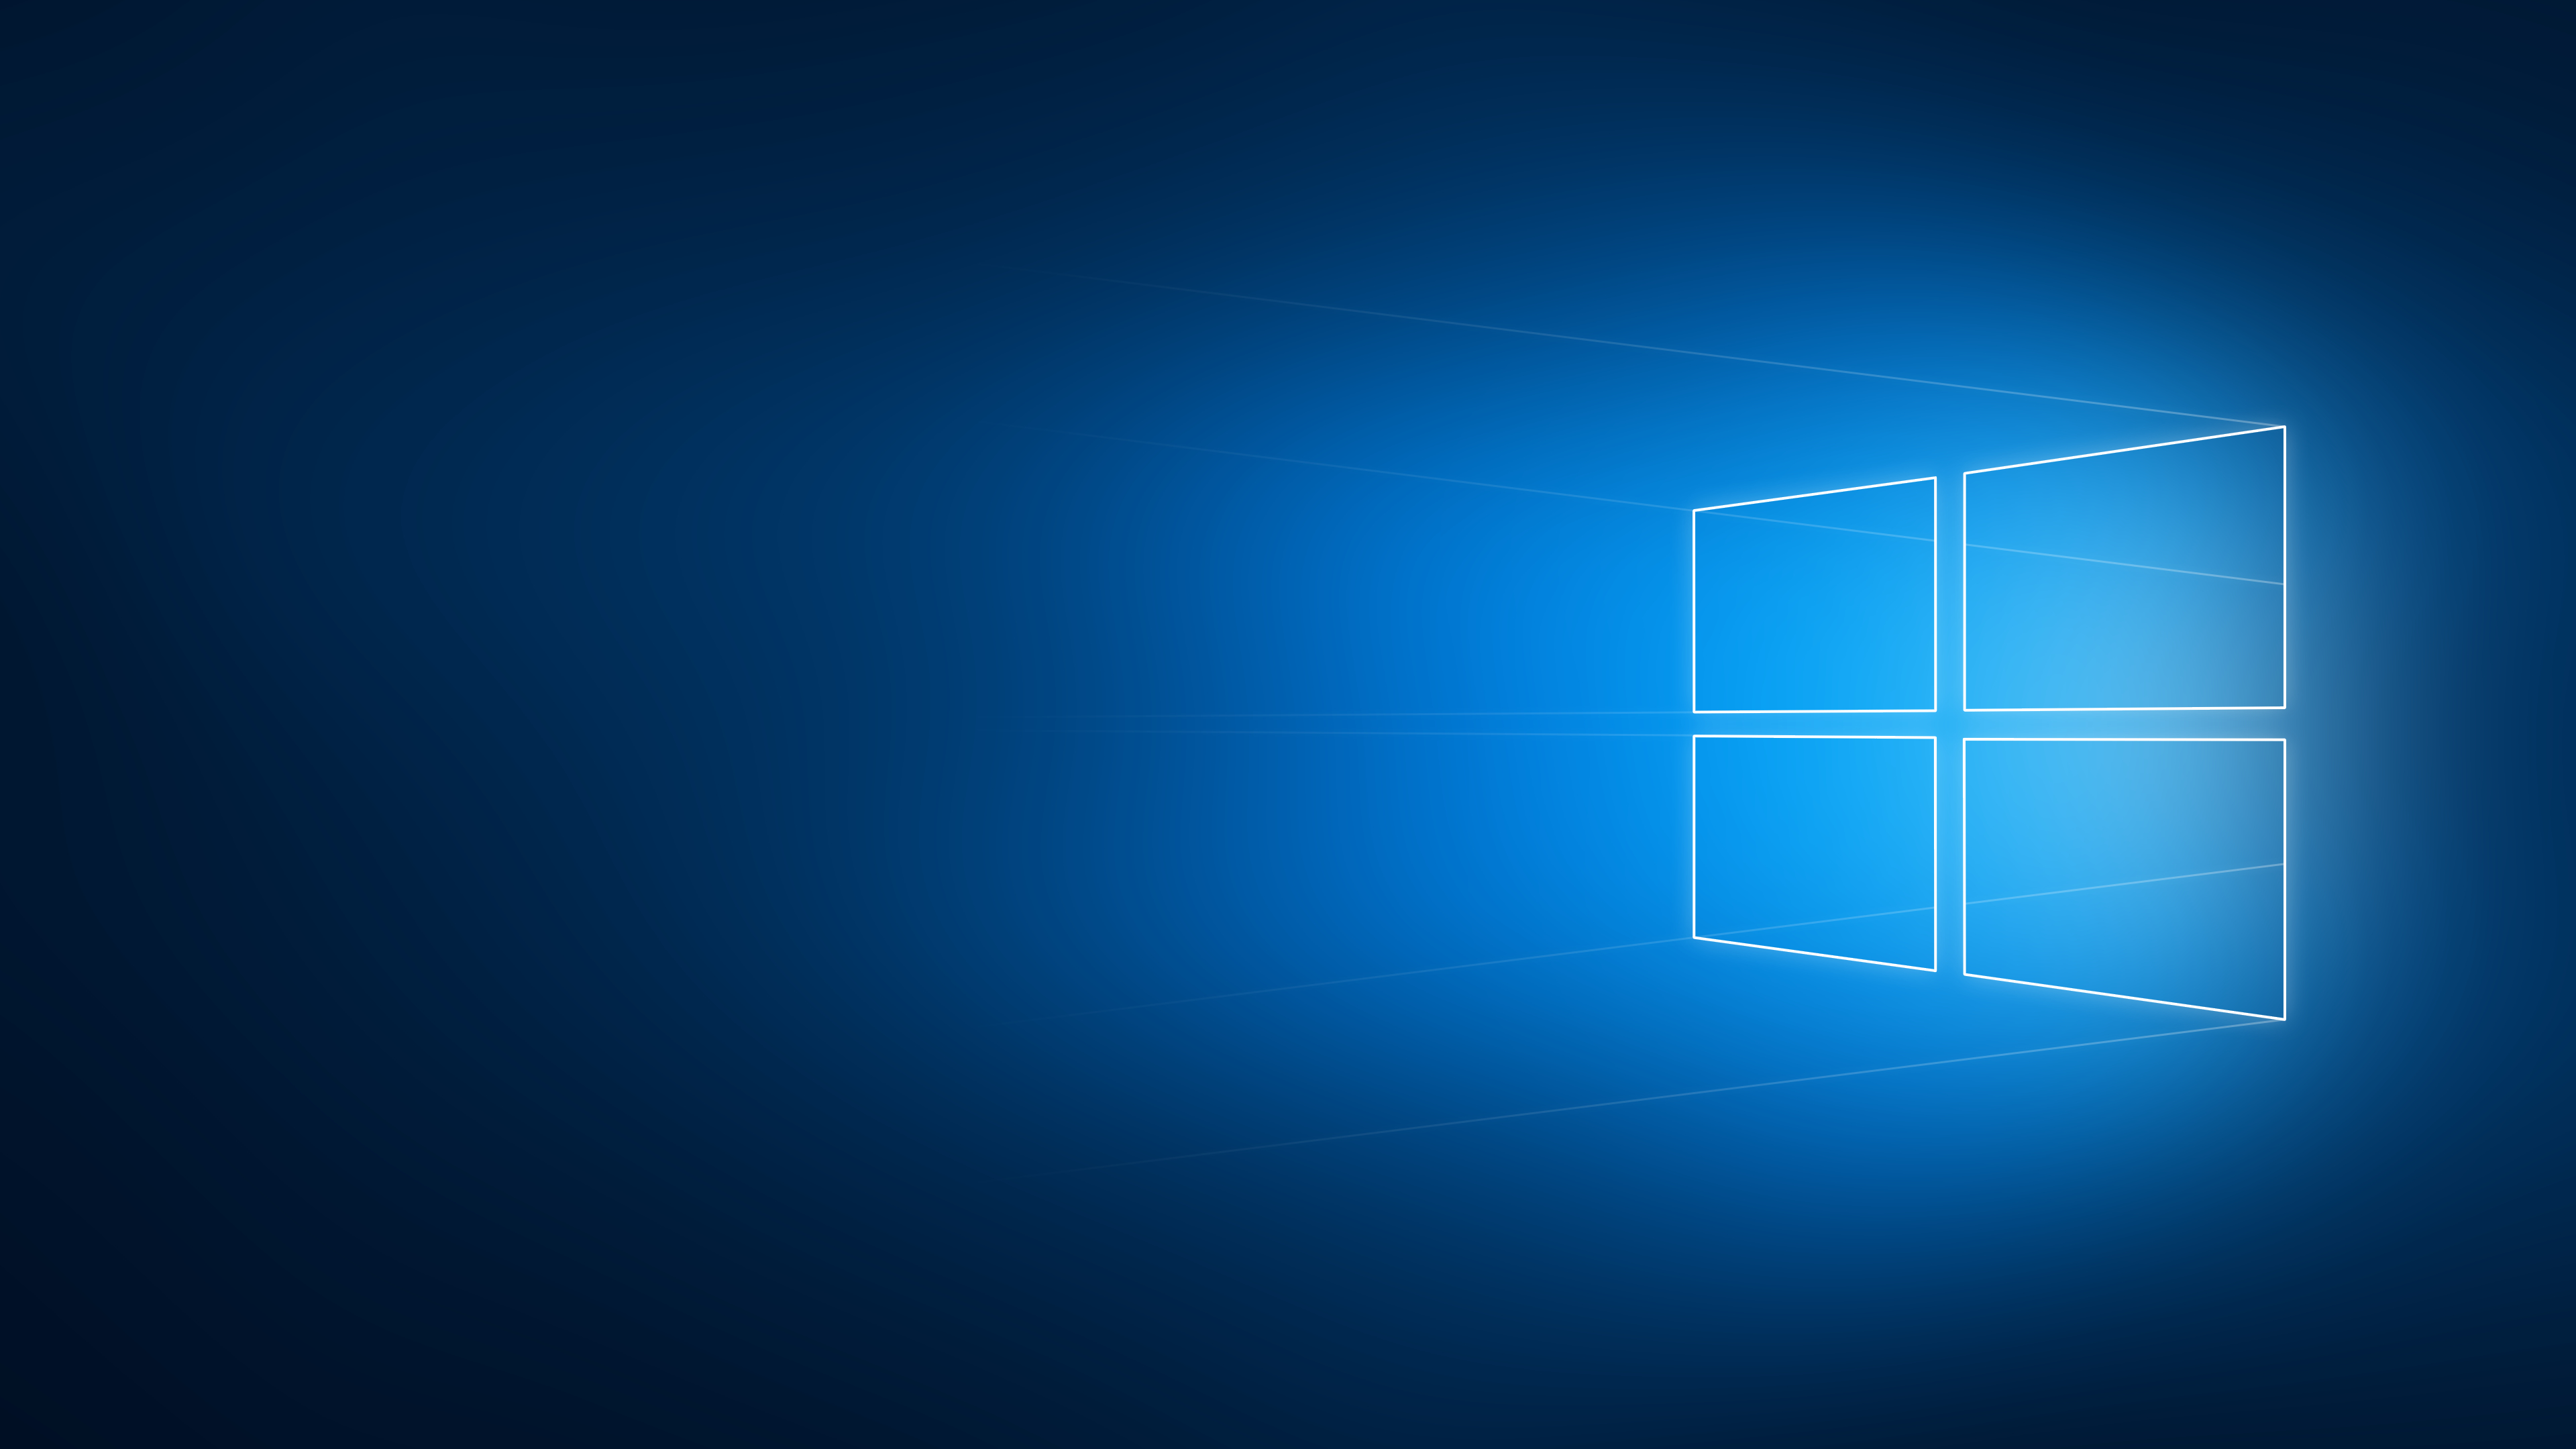 1360x768 Windows 10 Hero Logo Desktop Laptop Hd Wallpaper Hd